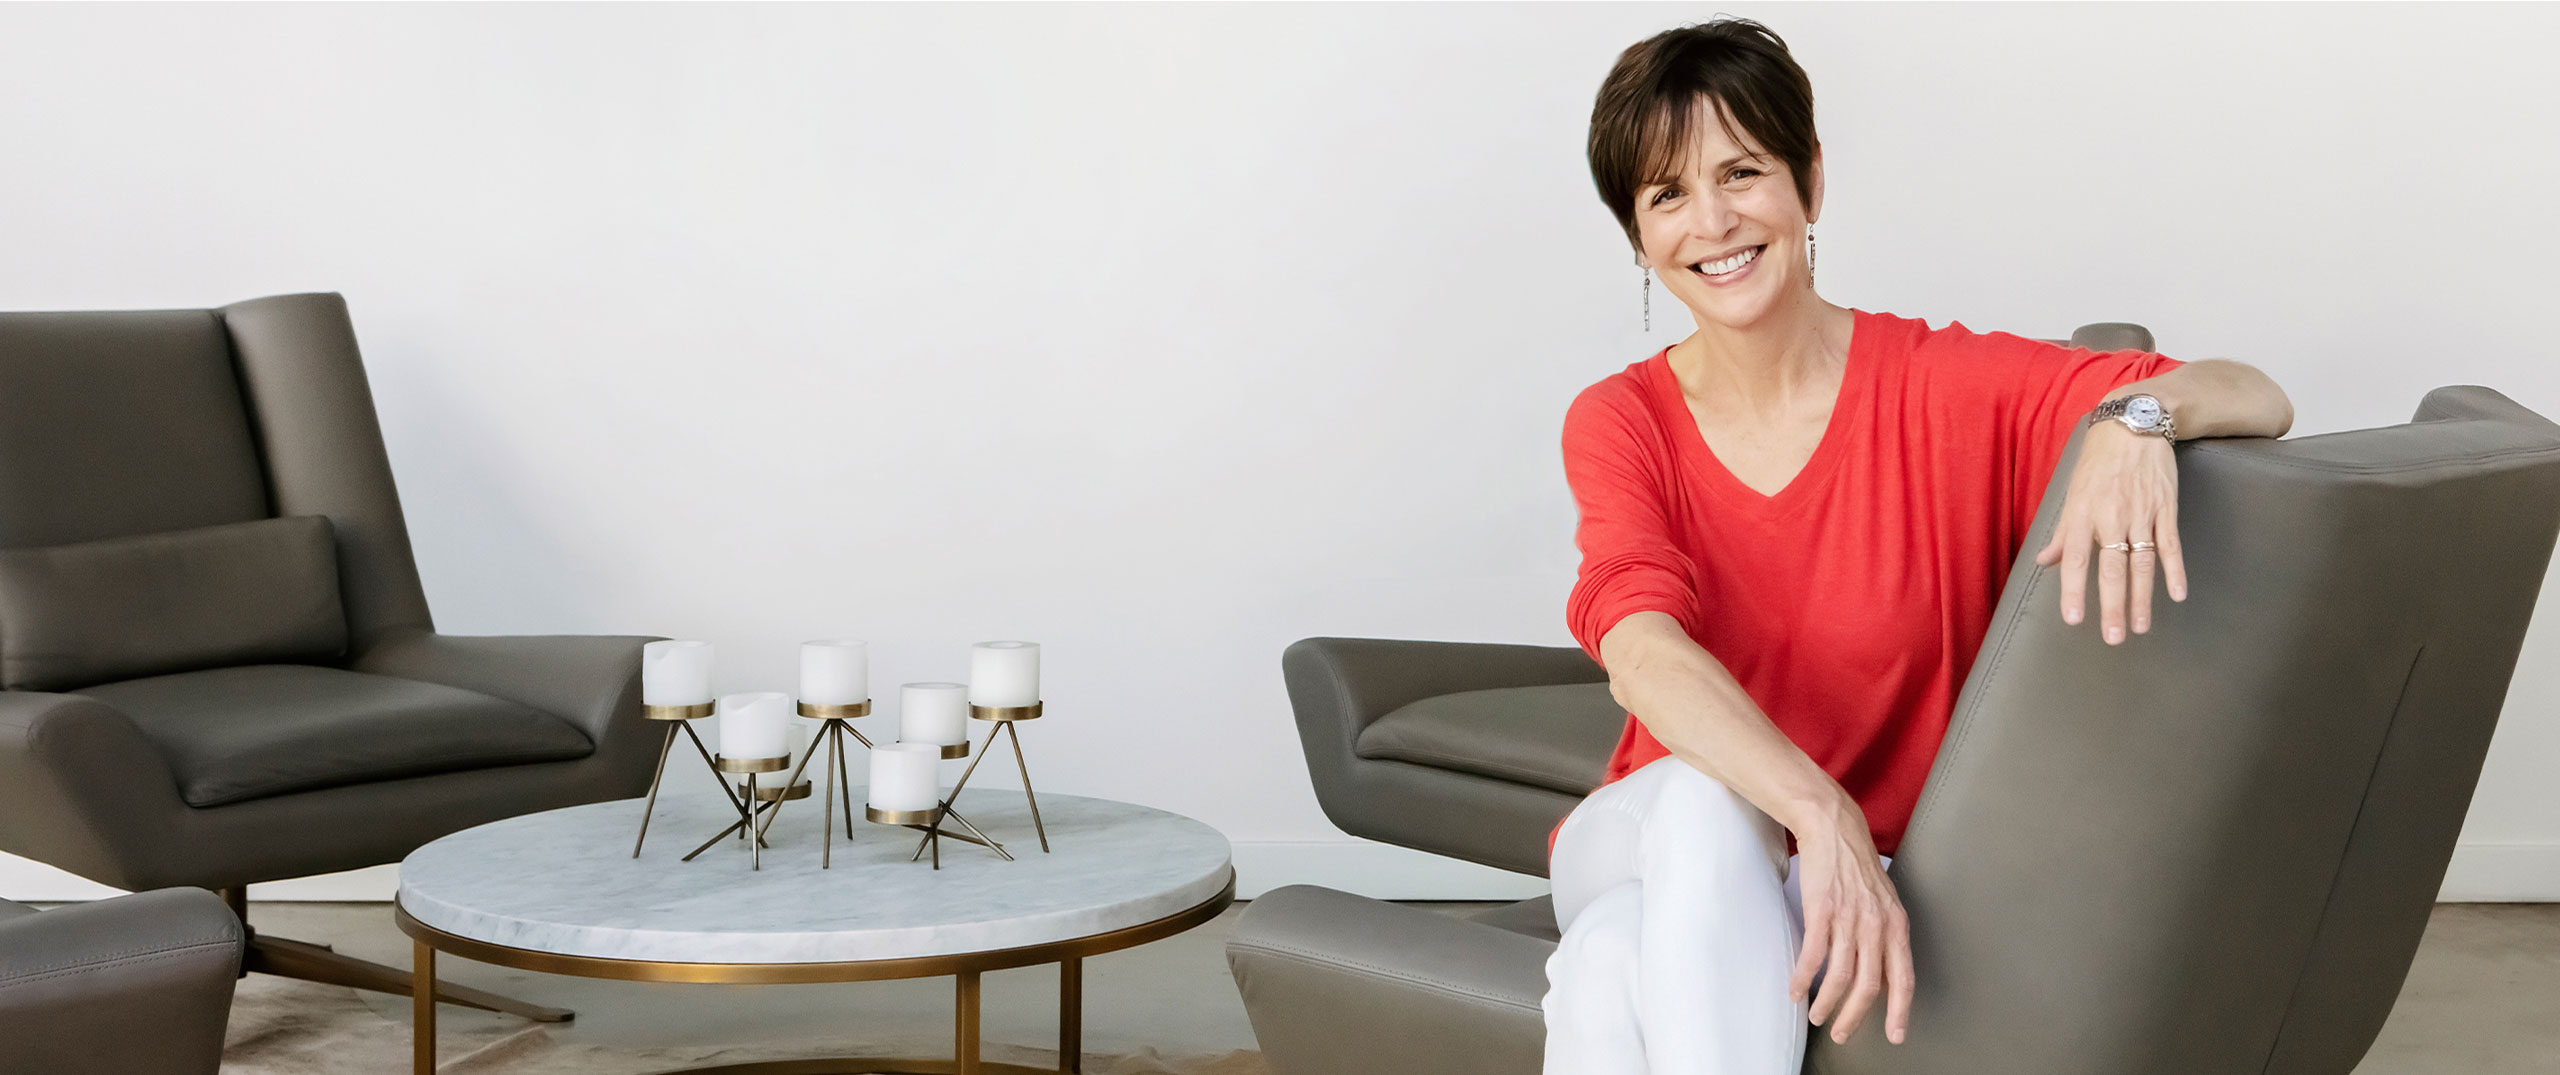 Linda Goldman sits smiling in a grey chair near a coffee table with candles on it